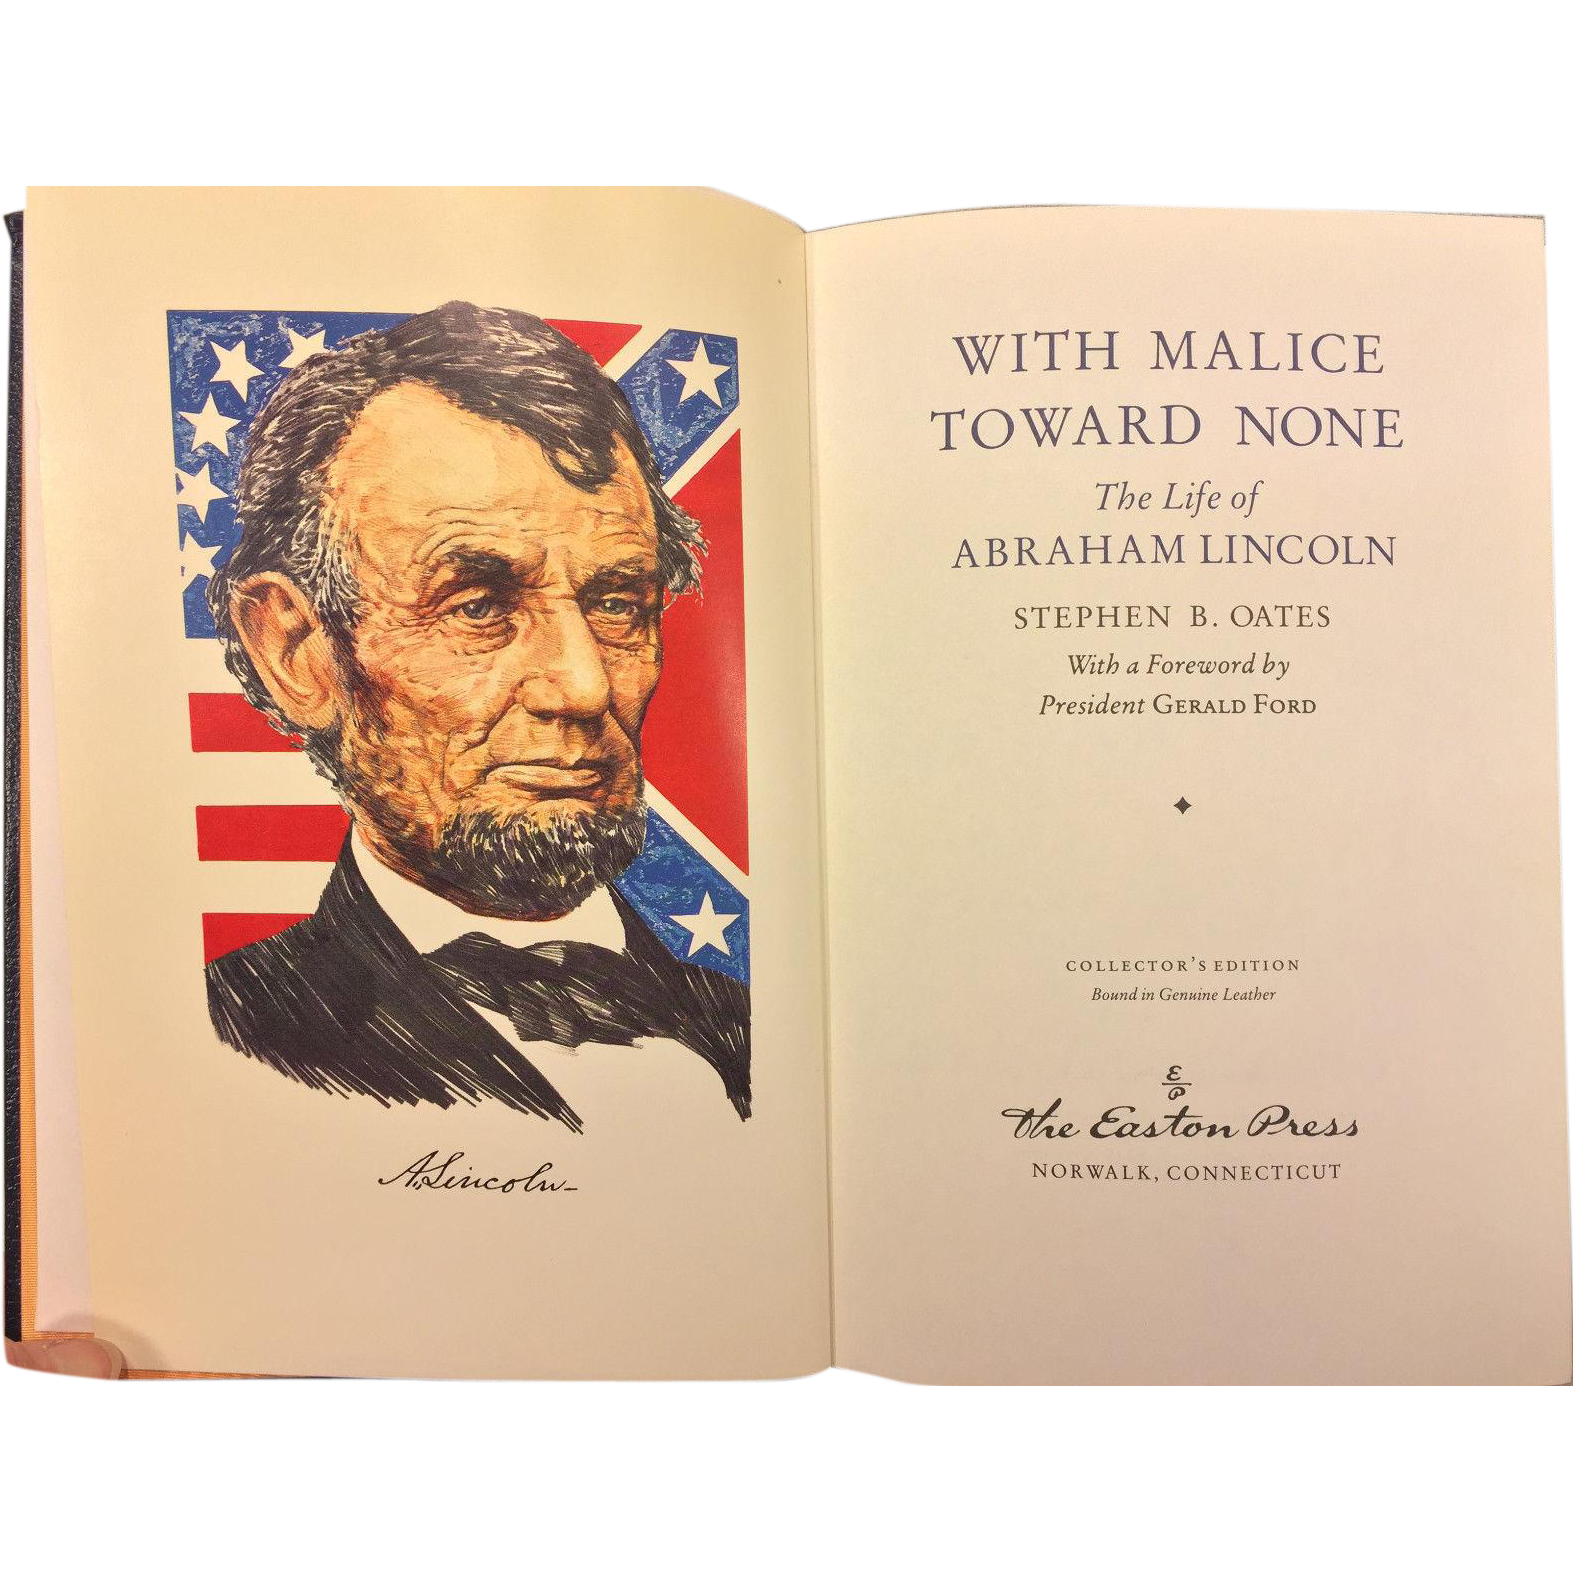 With Malice Toward None The Life of Abraham Lincoln by